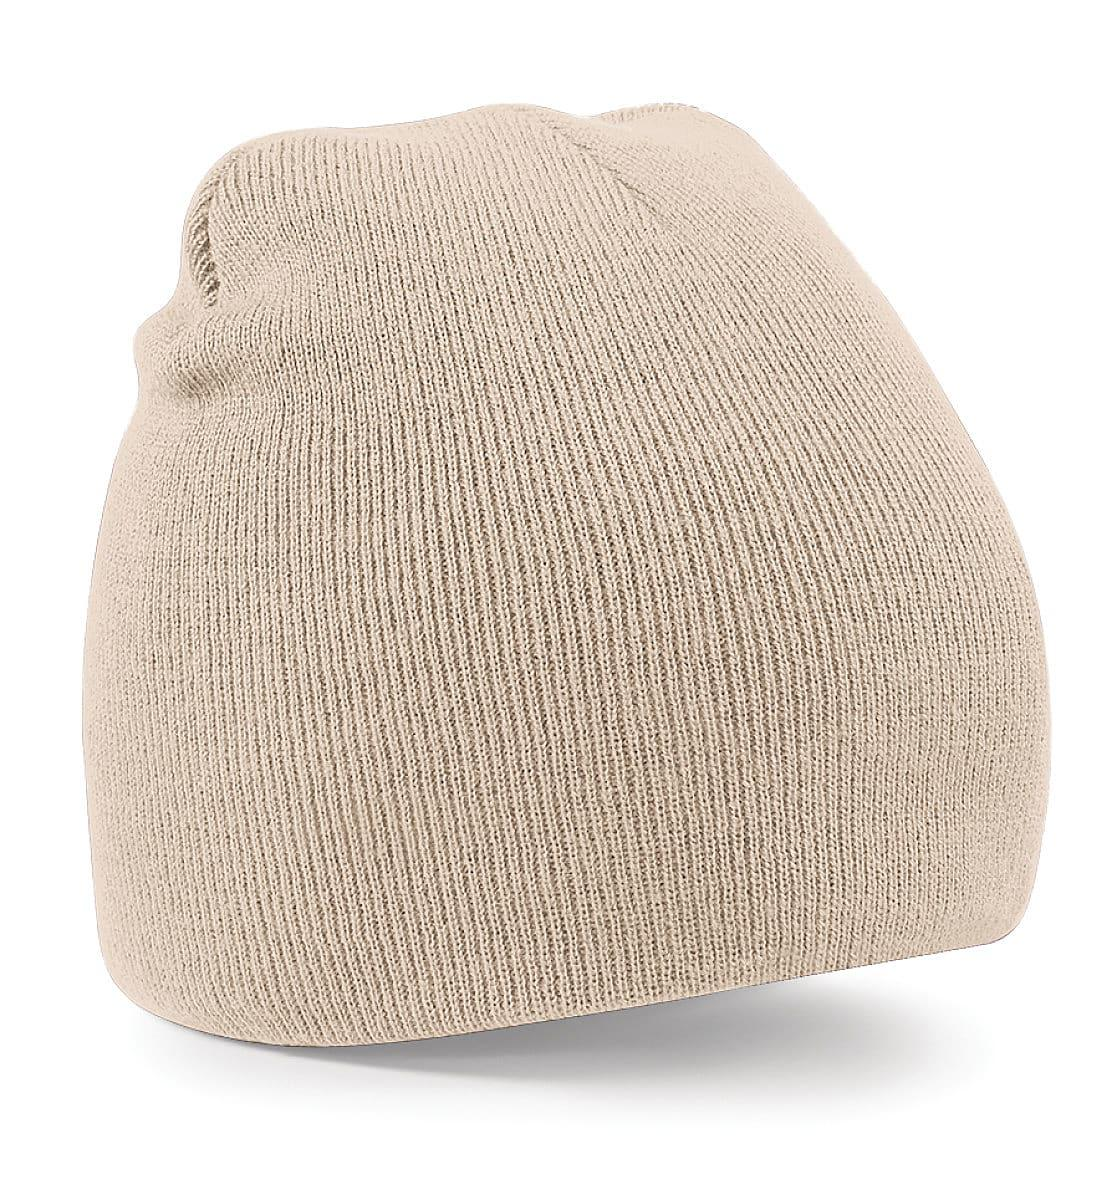 Beechfield Original Pull-On Beanie Hat in Stone (Product Code: B44)